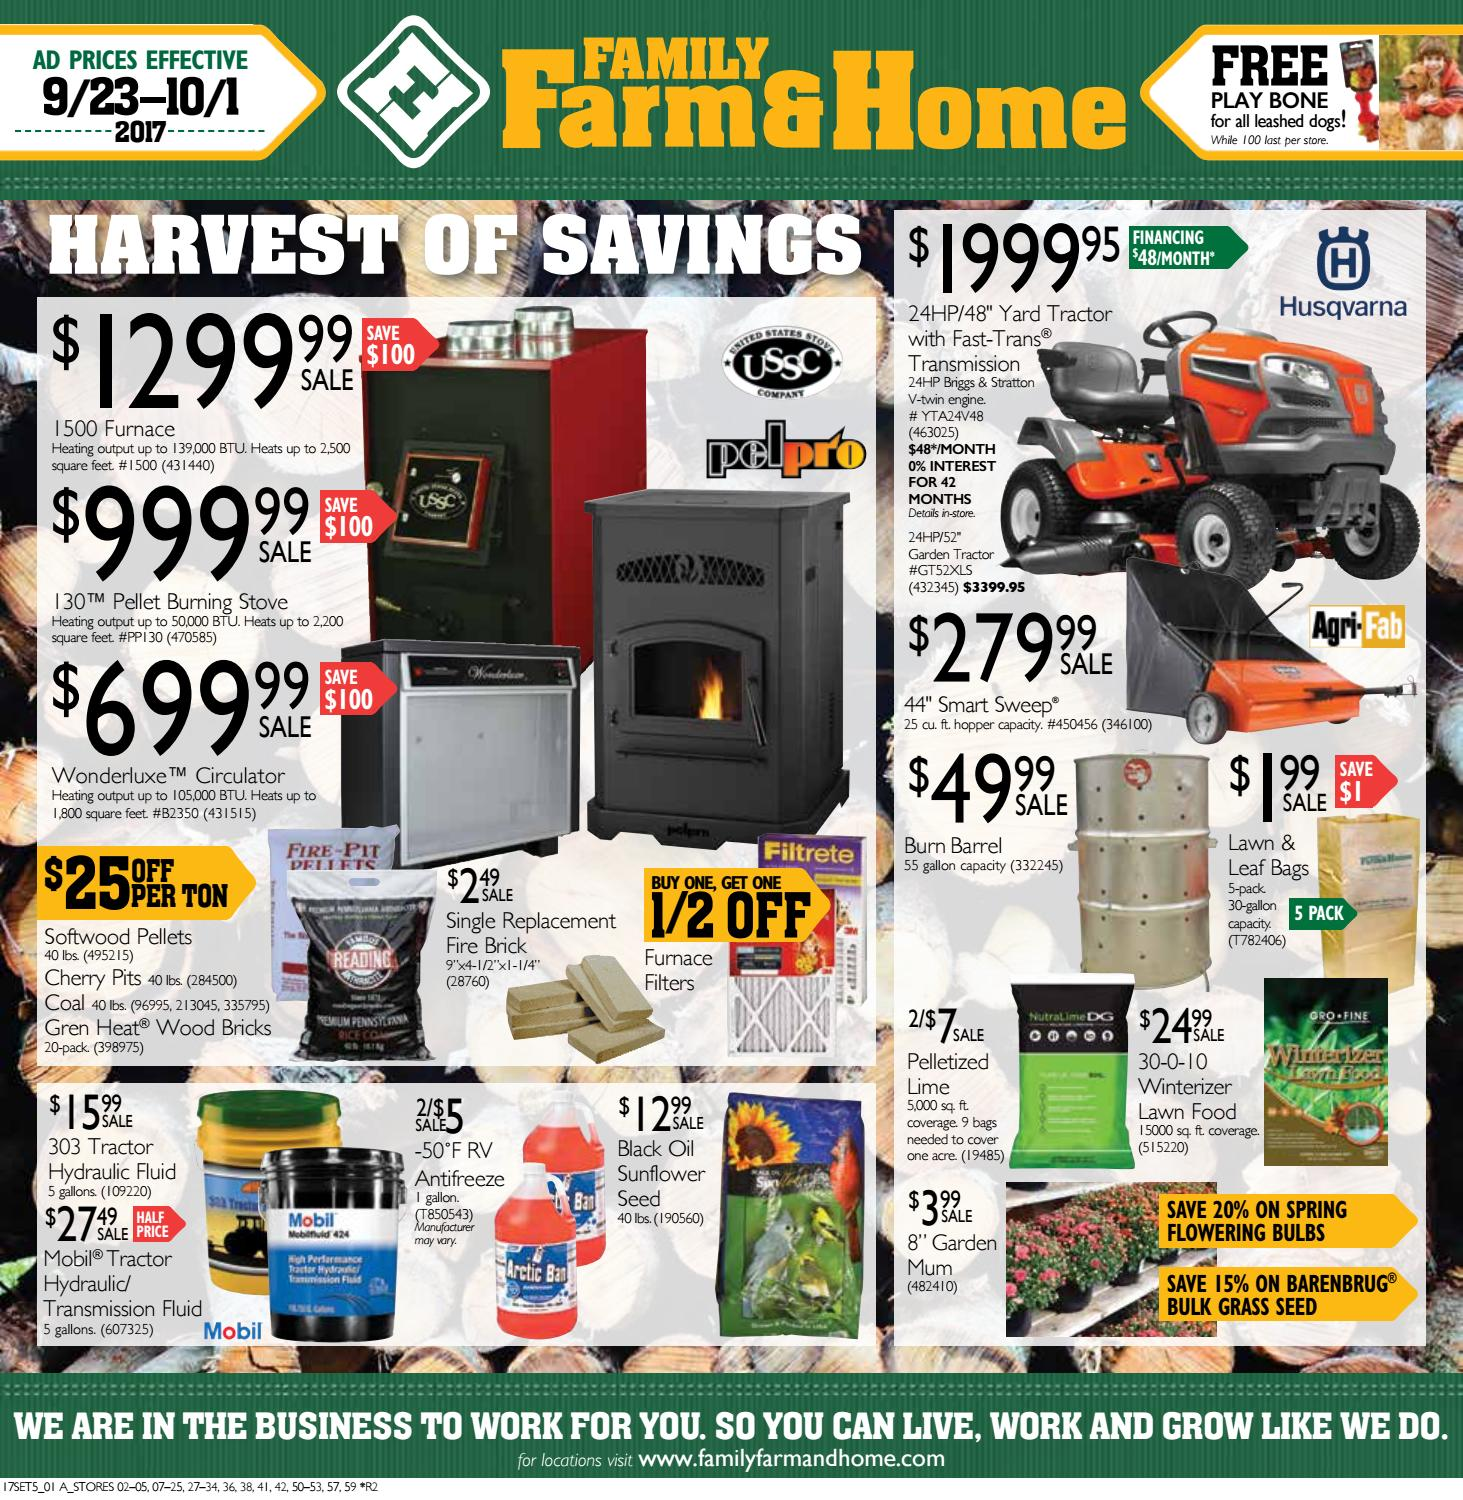 Family Farm & Home SET5 Ad (Effective September 23-October 1